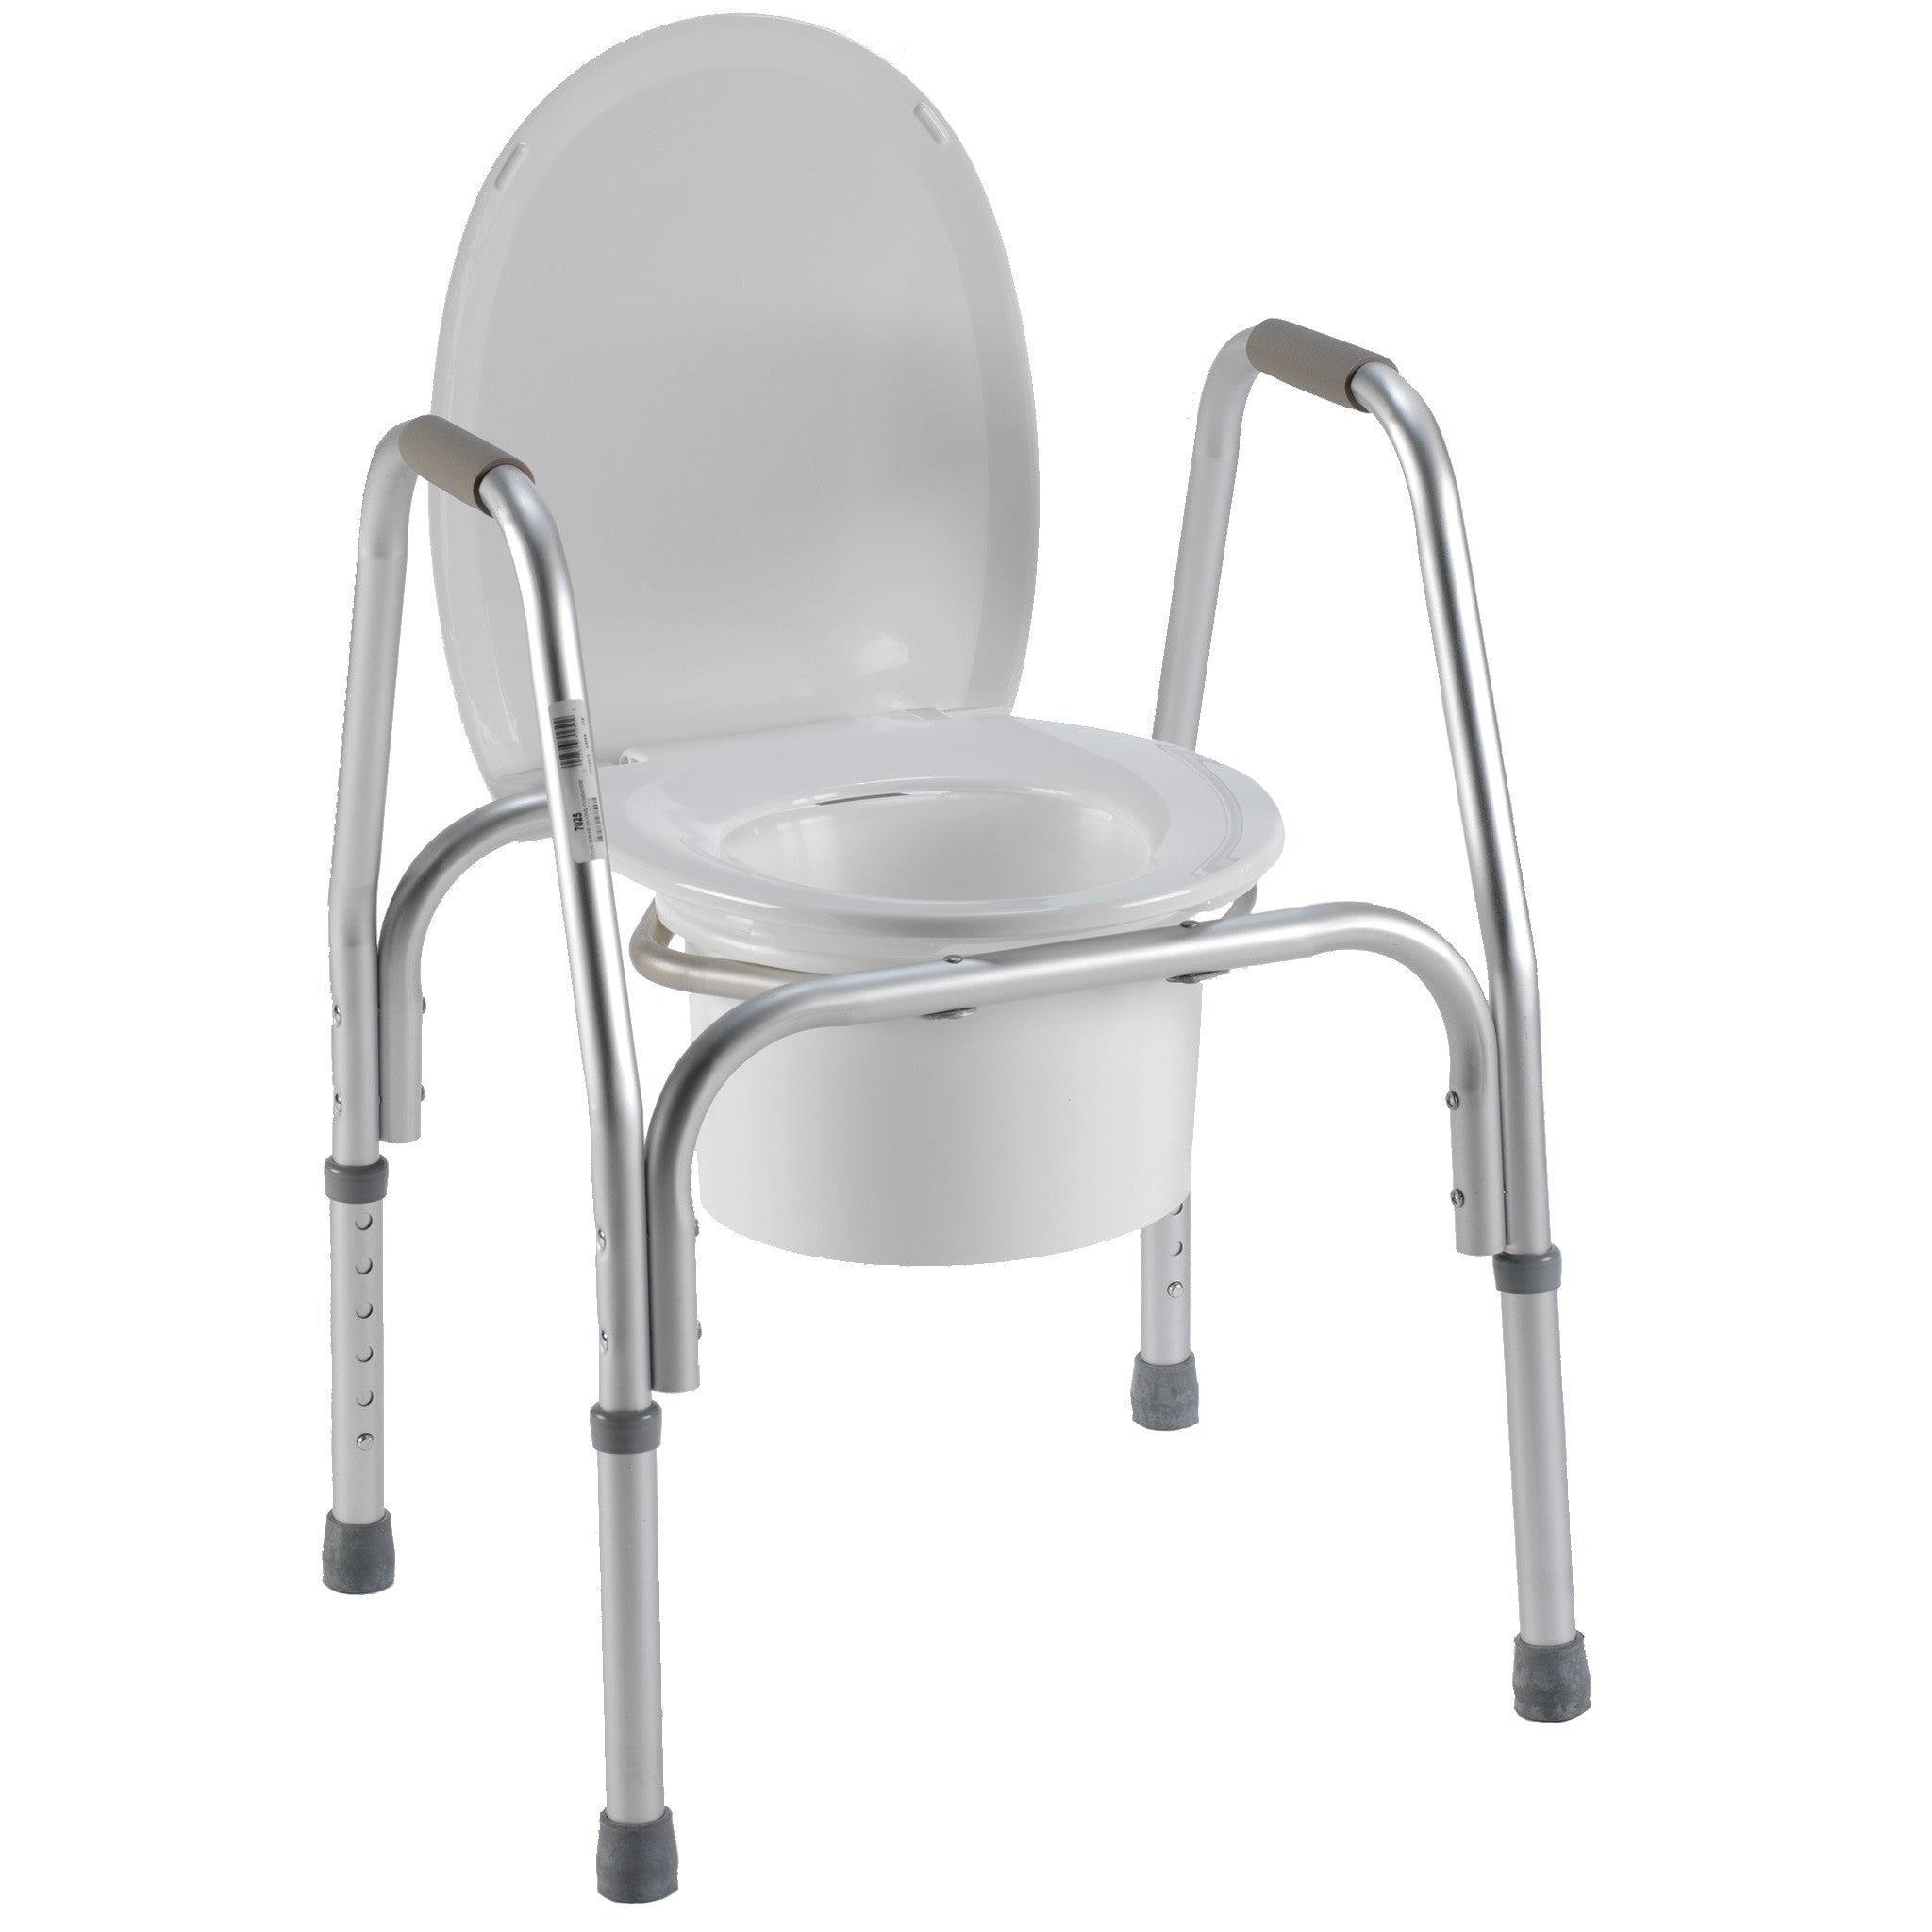 7025 / 3-in-1 Aluminum Commode – PCPMedical